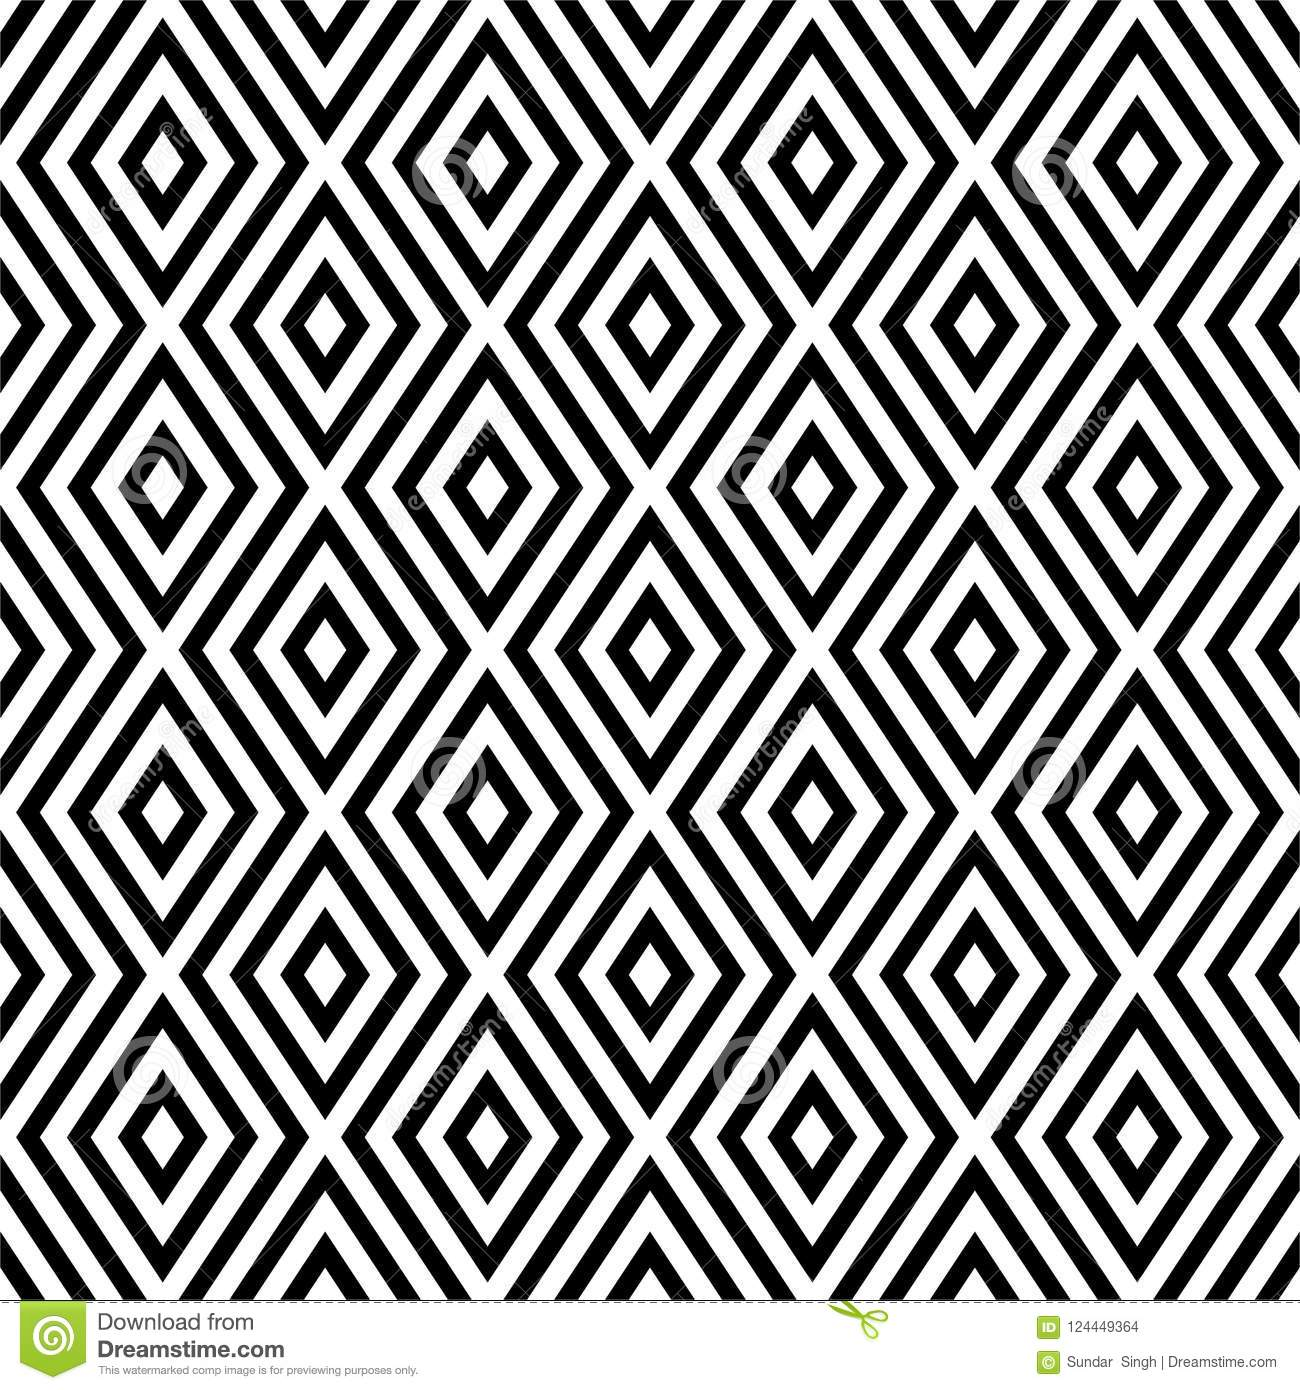 Vector Seamless Abstract Diagonal Pattern Black And White Abstract Background Wallpaper Vector Illustration Stock Vector Illustration Of Bookcoversscreen Clothes 124449364